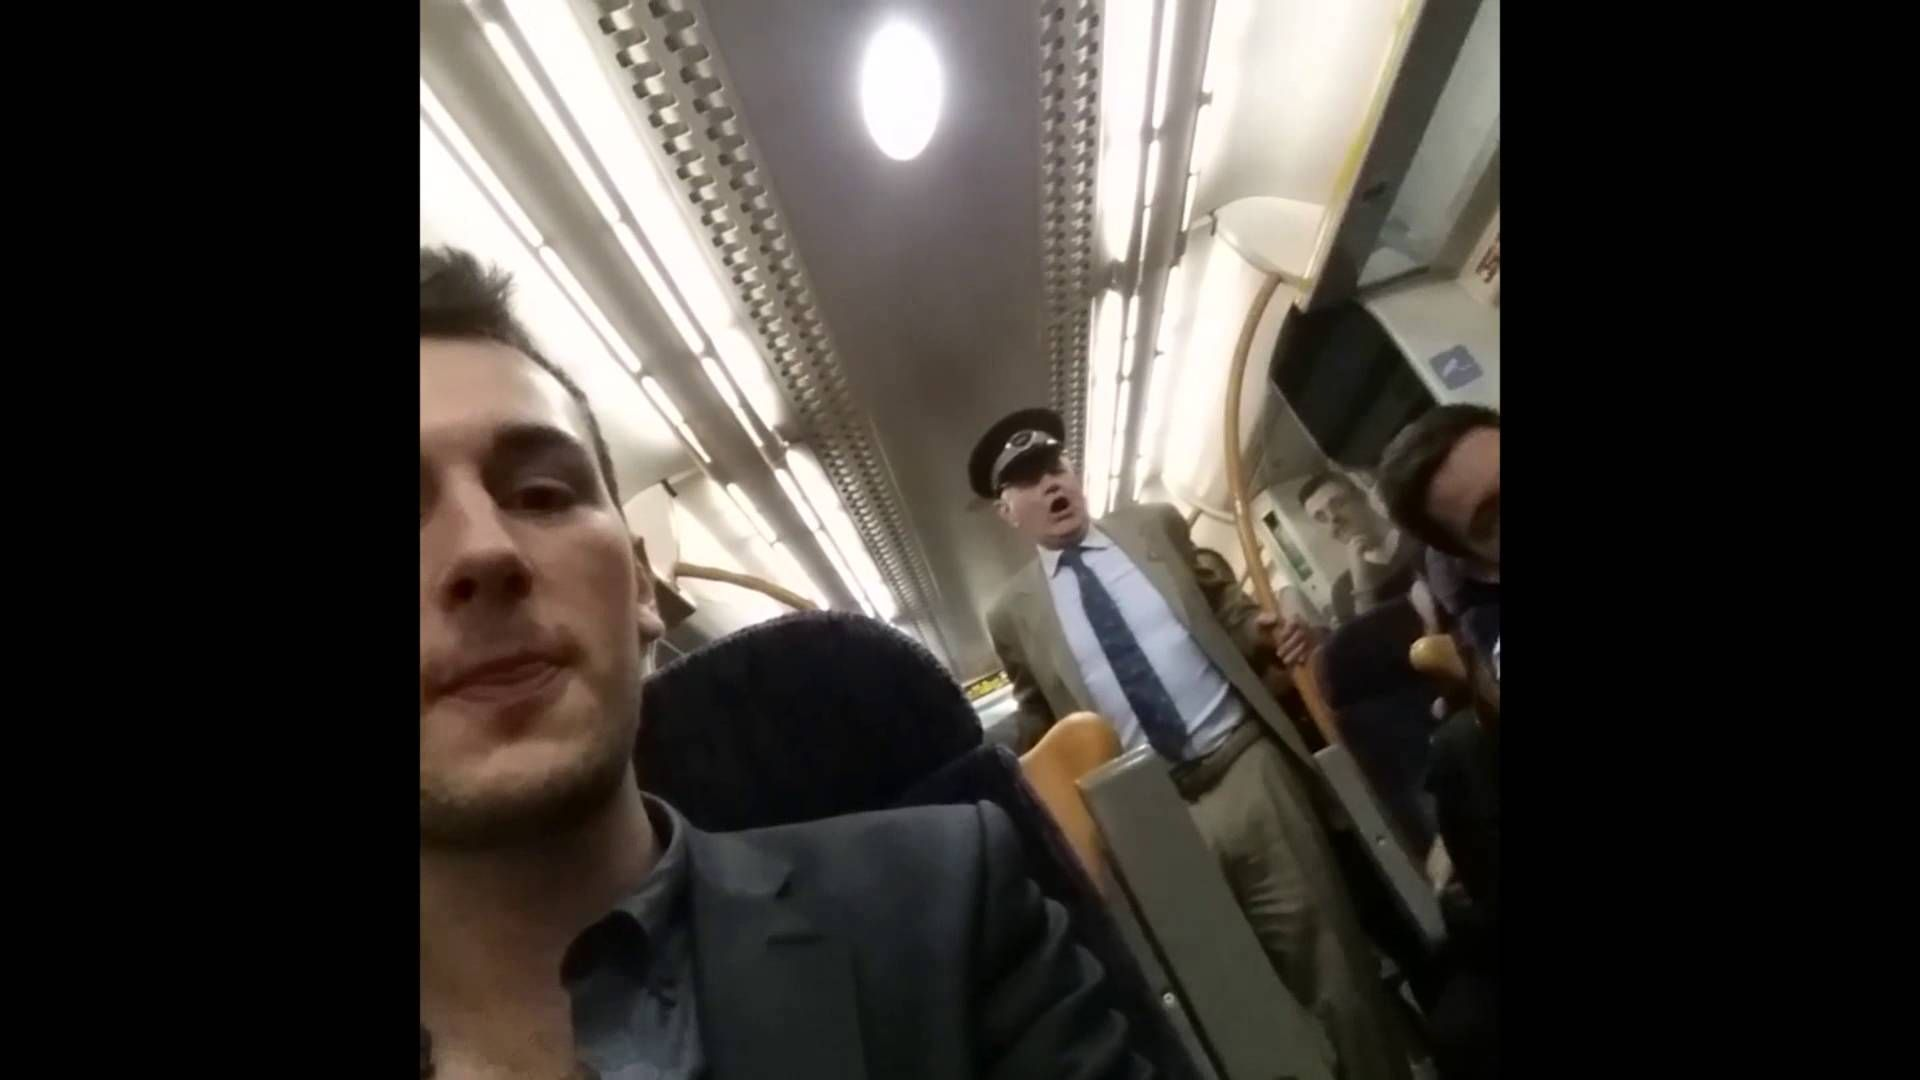 English Gent Gets Everyone On Train To Join In Drunken, Jolly Sing-A-Long (http://www.huffingtonpost.com/2014/06/04/drunk-pensioner-sing-a-long-train-england_n_5445102.html?utm_hp_ref=weird-news)